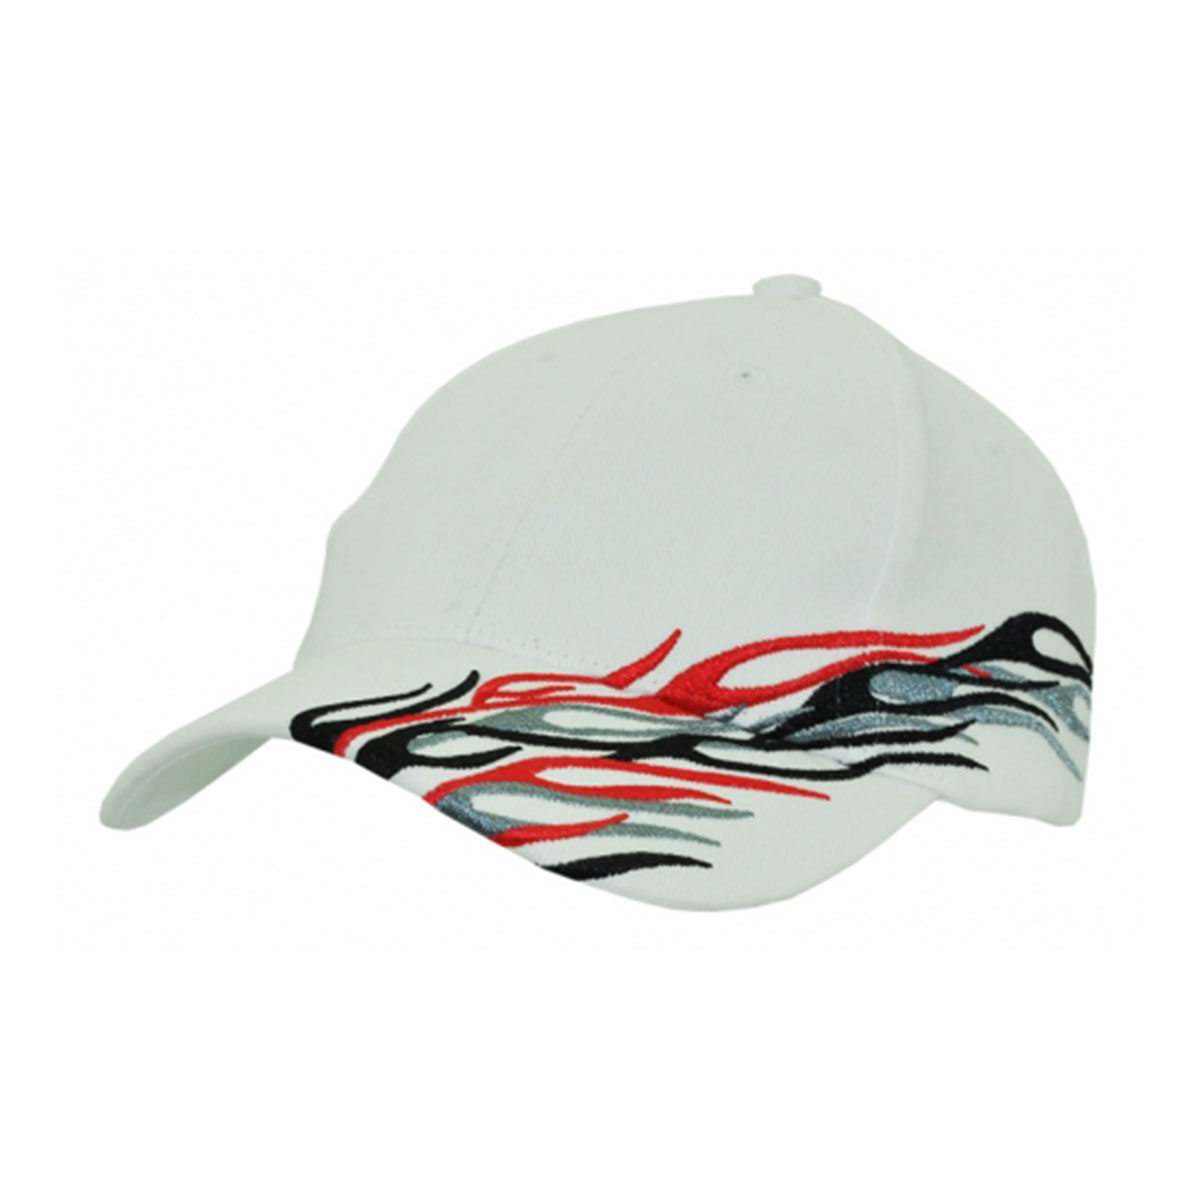 Cyclone Cap-White / Black / Grey / Red